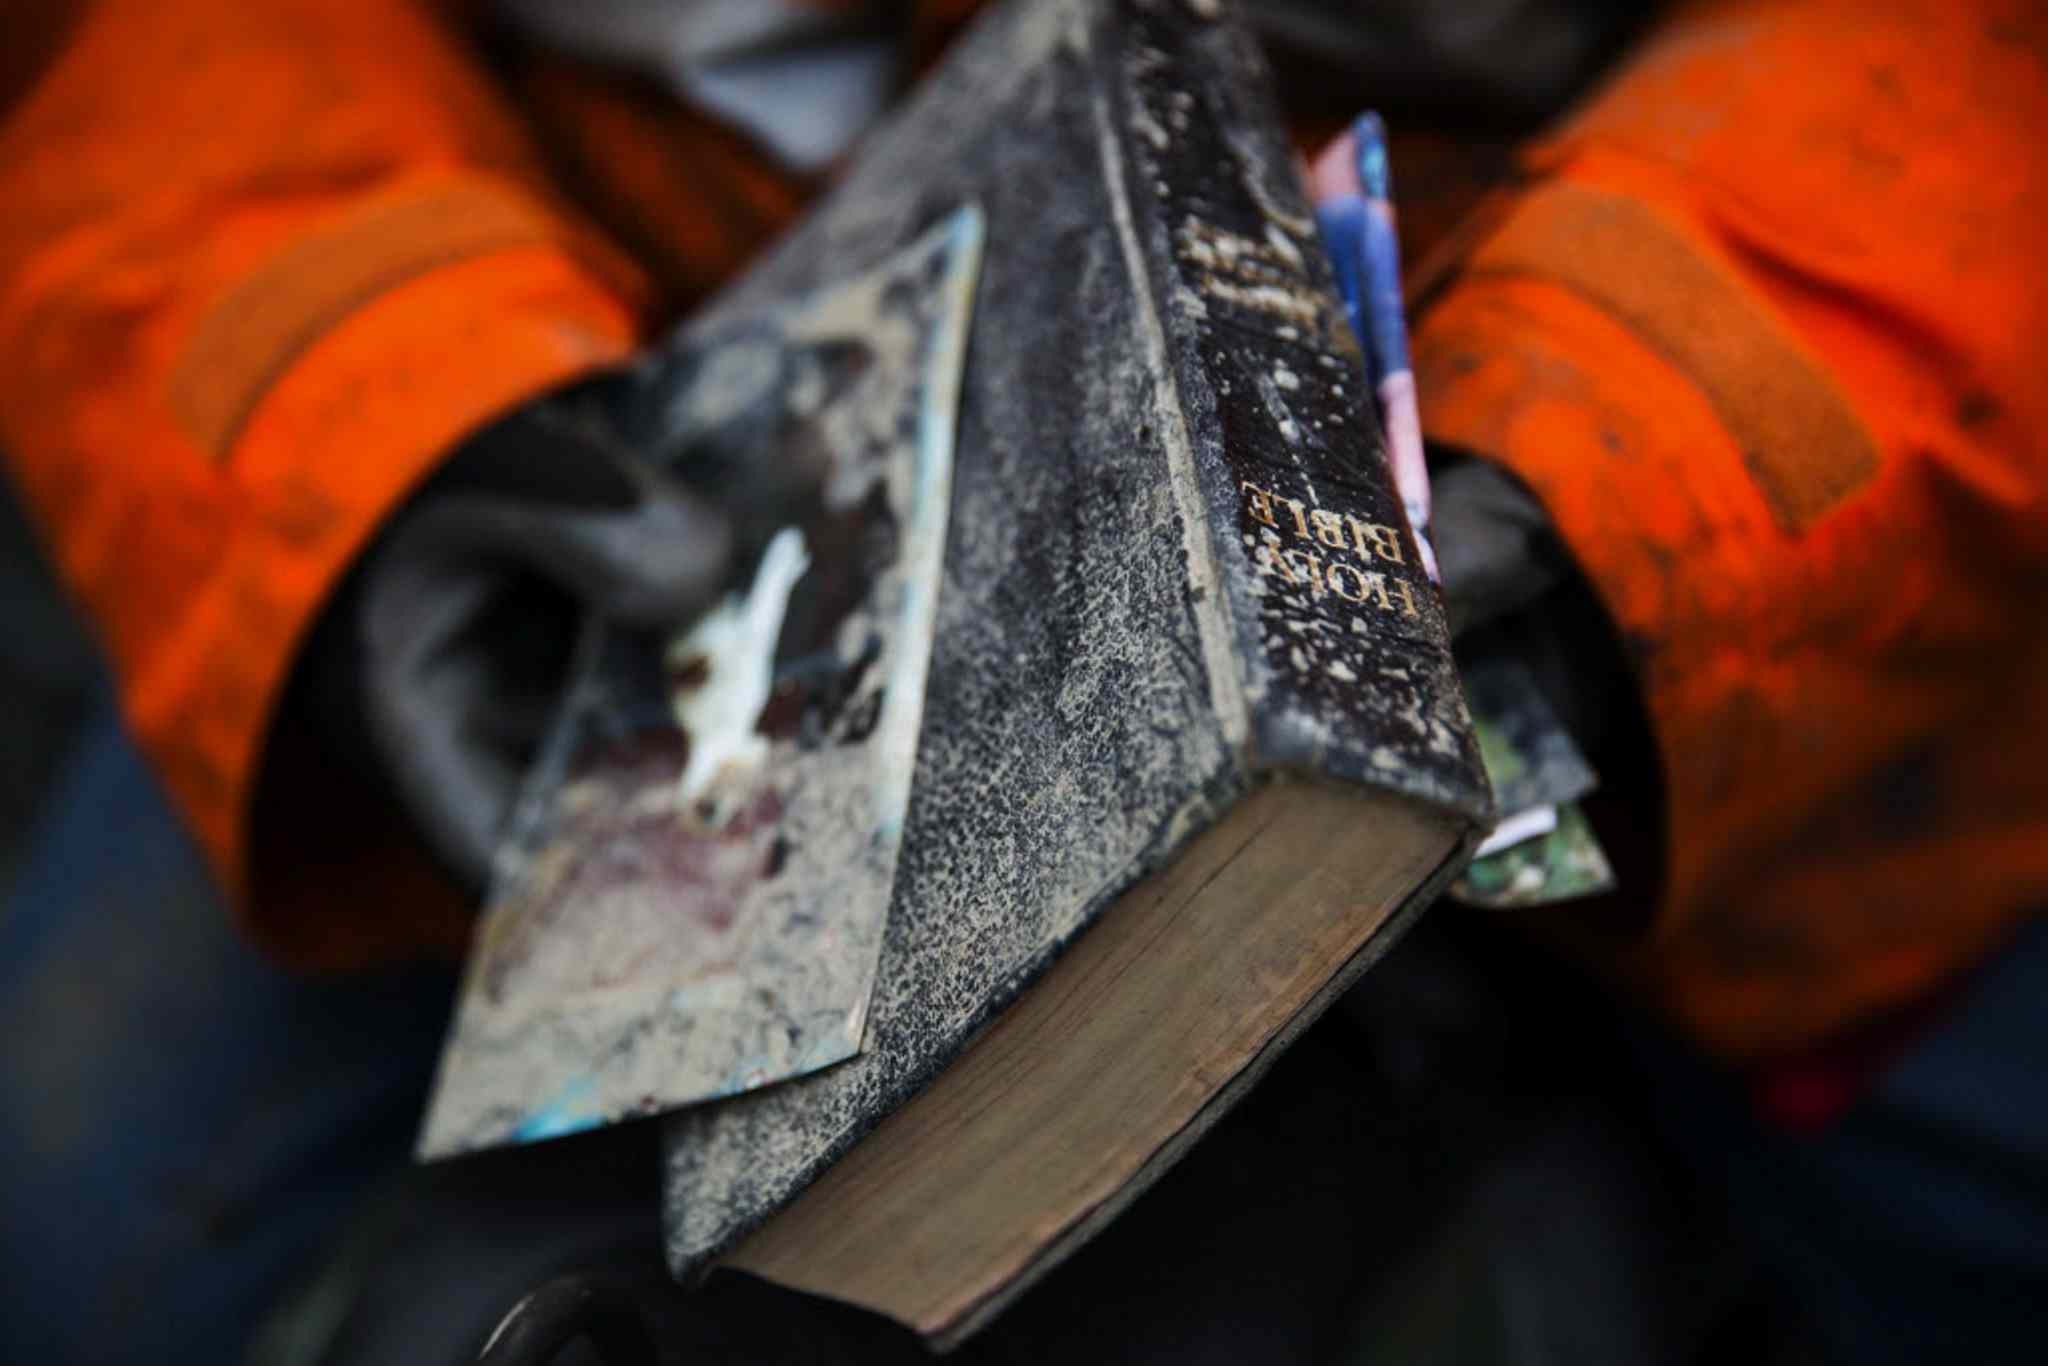 Elaine Young holds a bible pulled out of the debris field from the mudslide above the North Fork of the Stillaguamish River onto Highway 530, as recovery efforts are underway, near Oso, Wash.